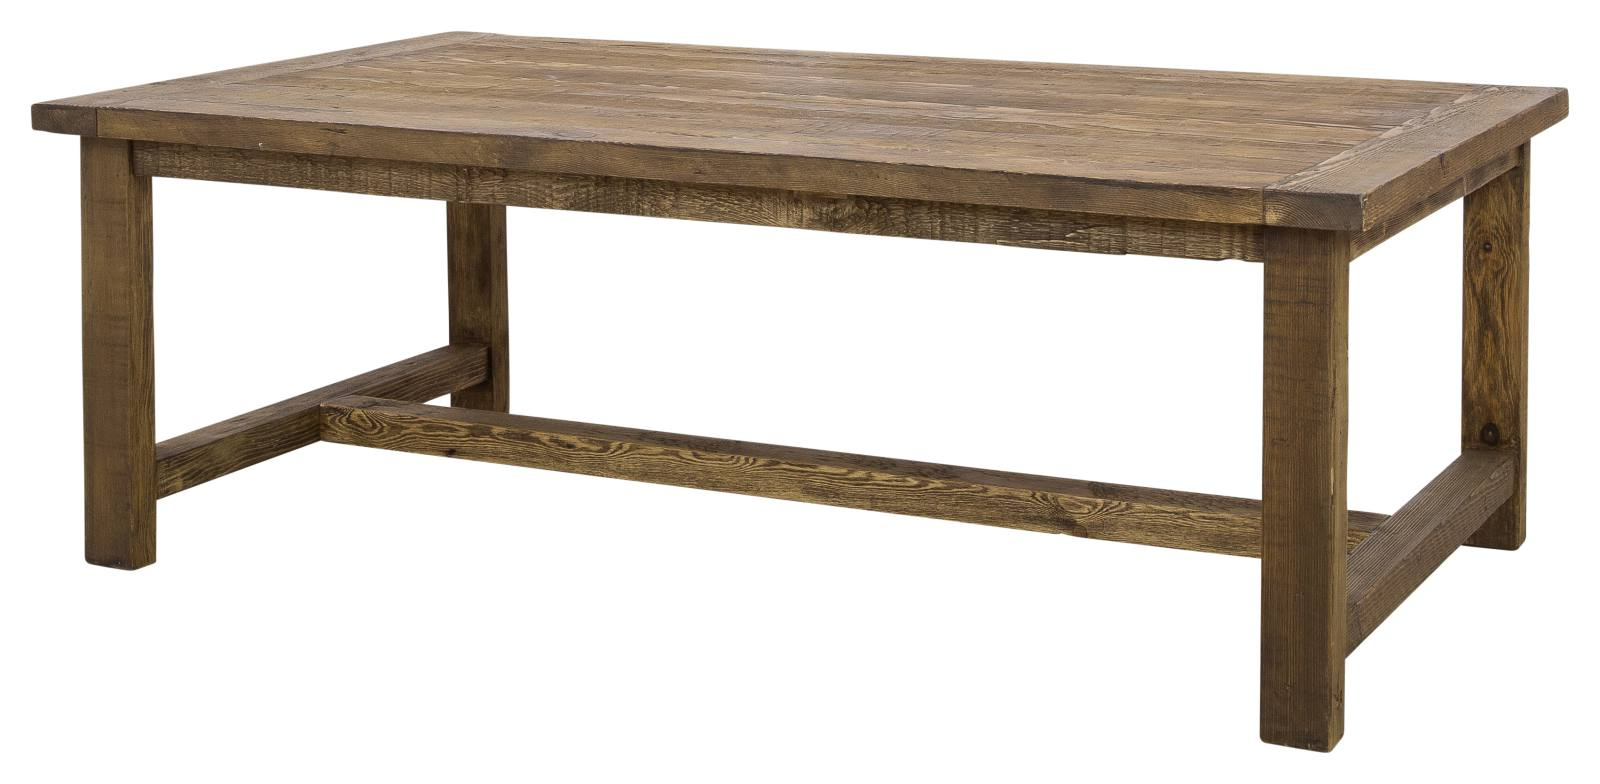 Landon Recycled Pine Coffee Table, Natural – Coffee Tables Regarding 2018 Natural Pine Coffee Tables (View 6 of 20)